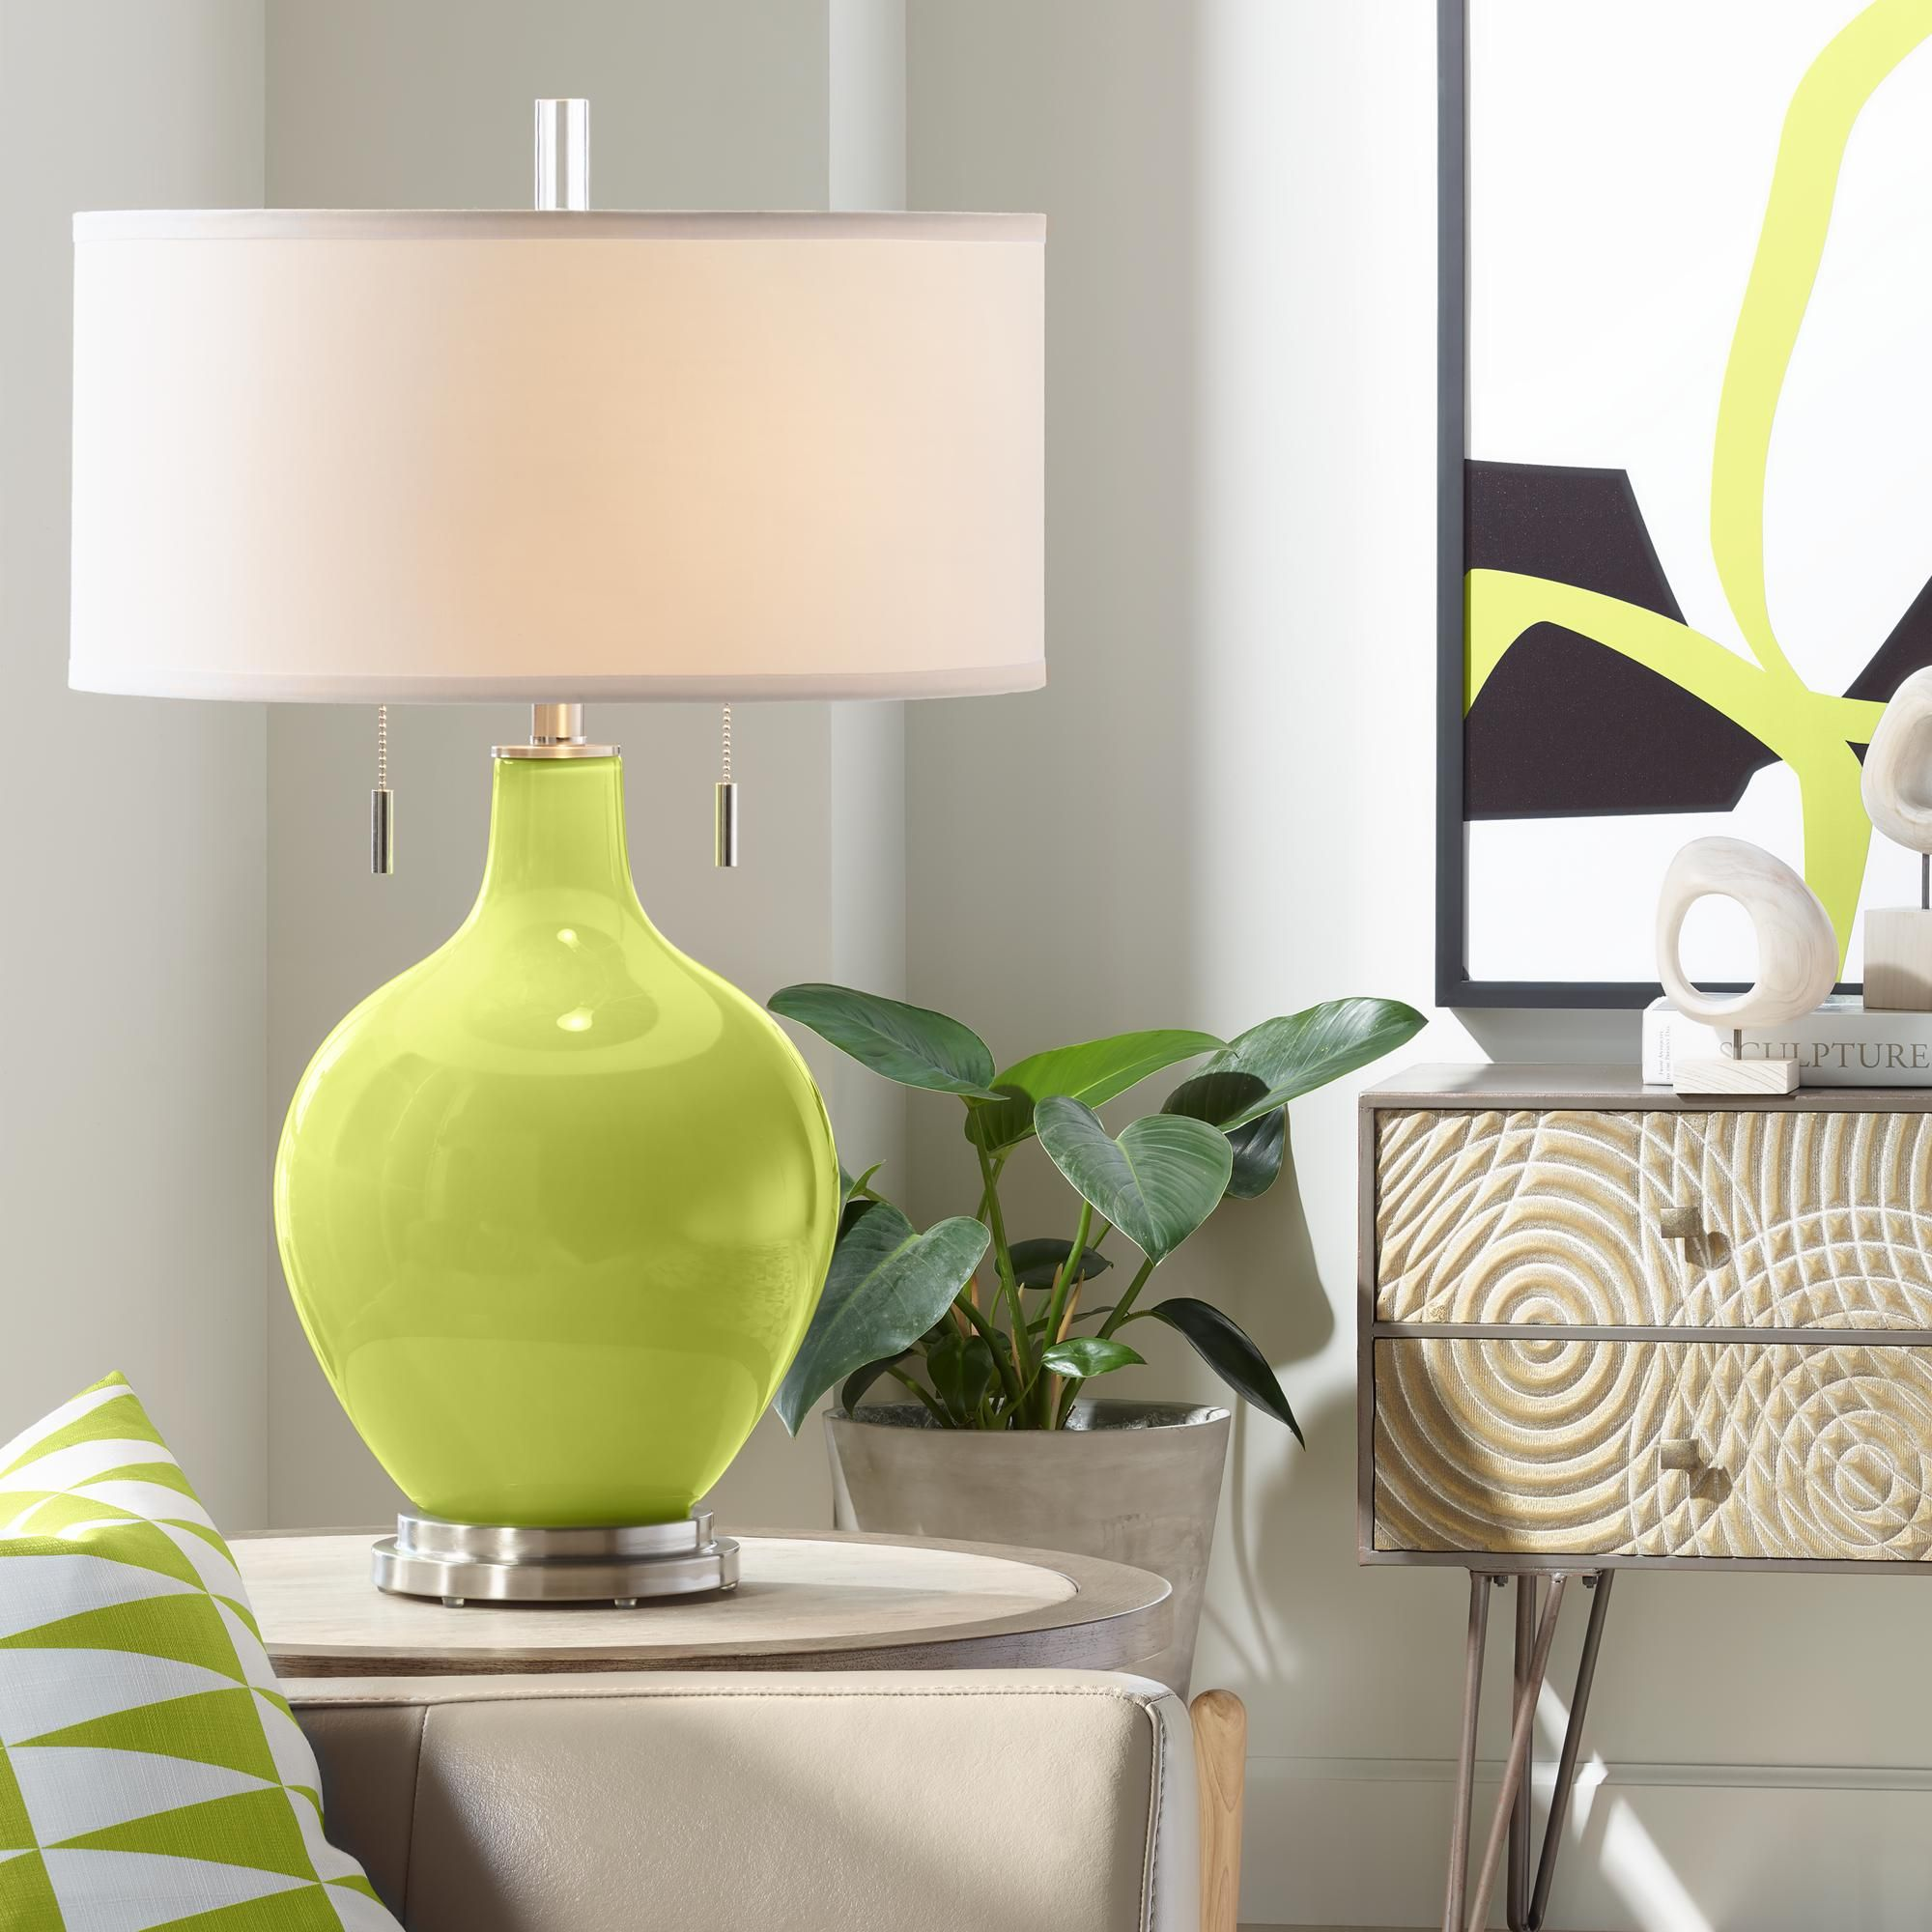 Parakeet Toby Table Lamp #tablelamp #tablelamps #tablelampideas #tablelampsforlivingroom